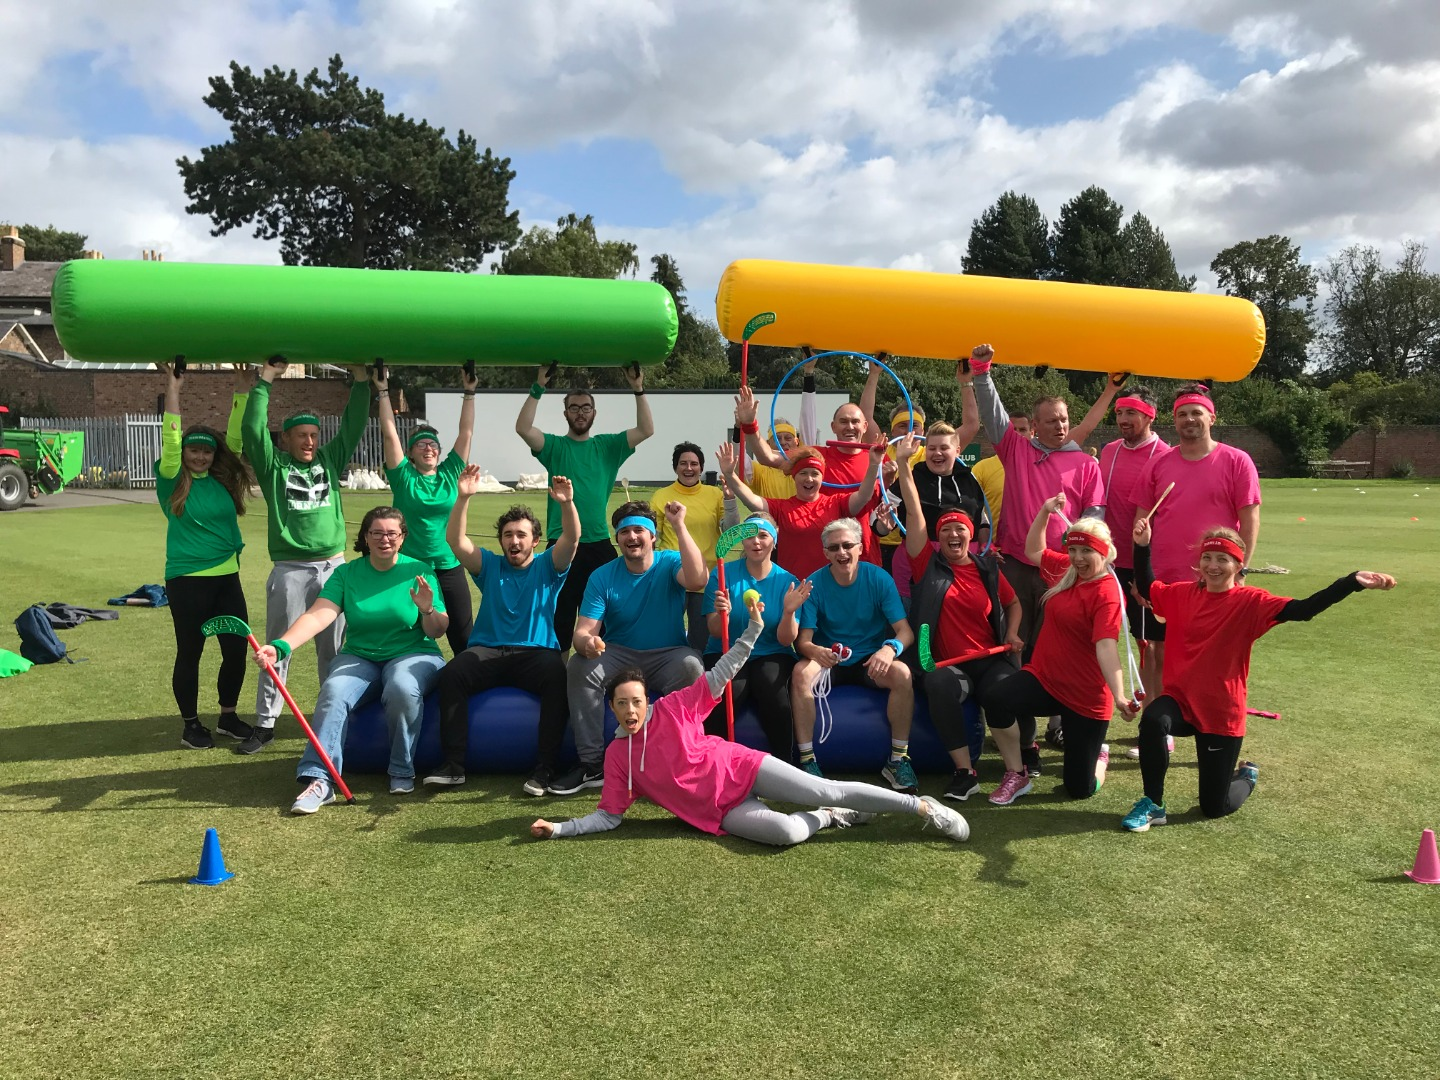 Excel Team Photo, sports day fun